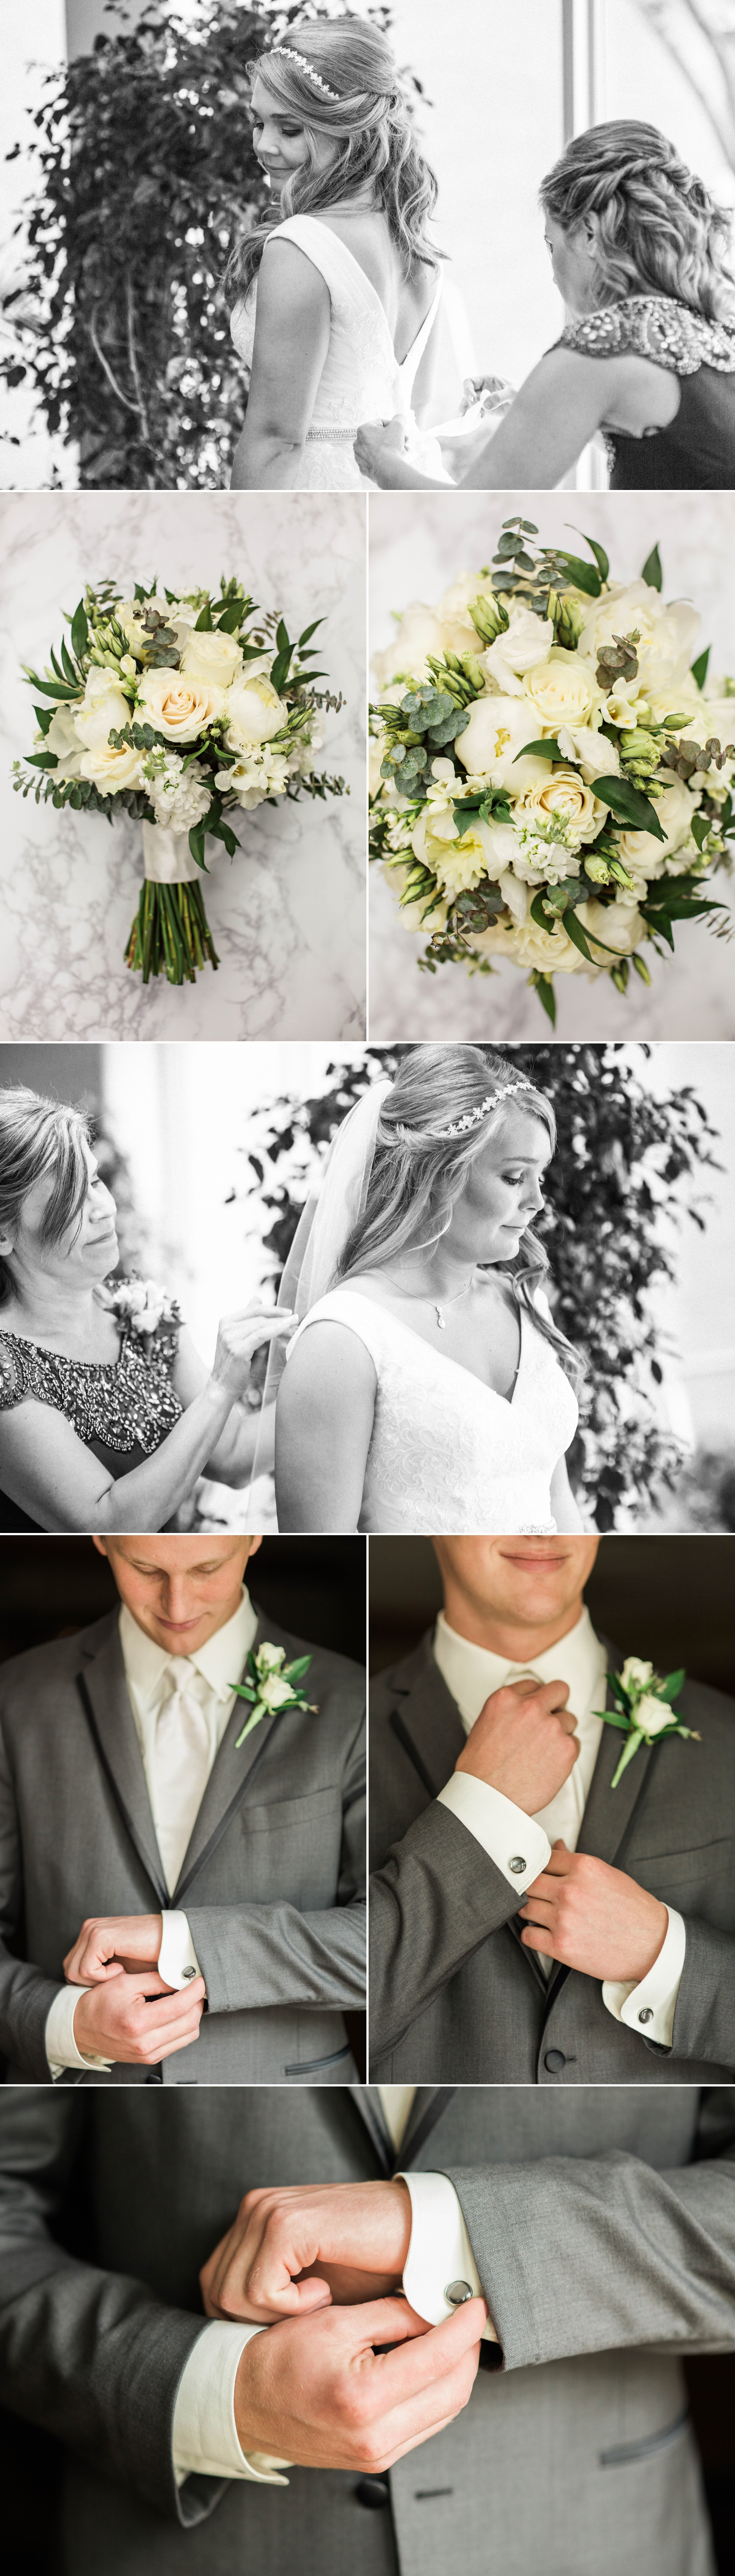 wedding - ceremony - bride - fort wayne - indiana - groom - flowers - bouquet